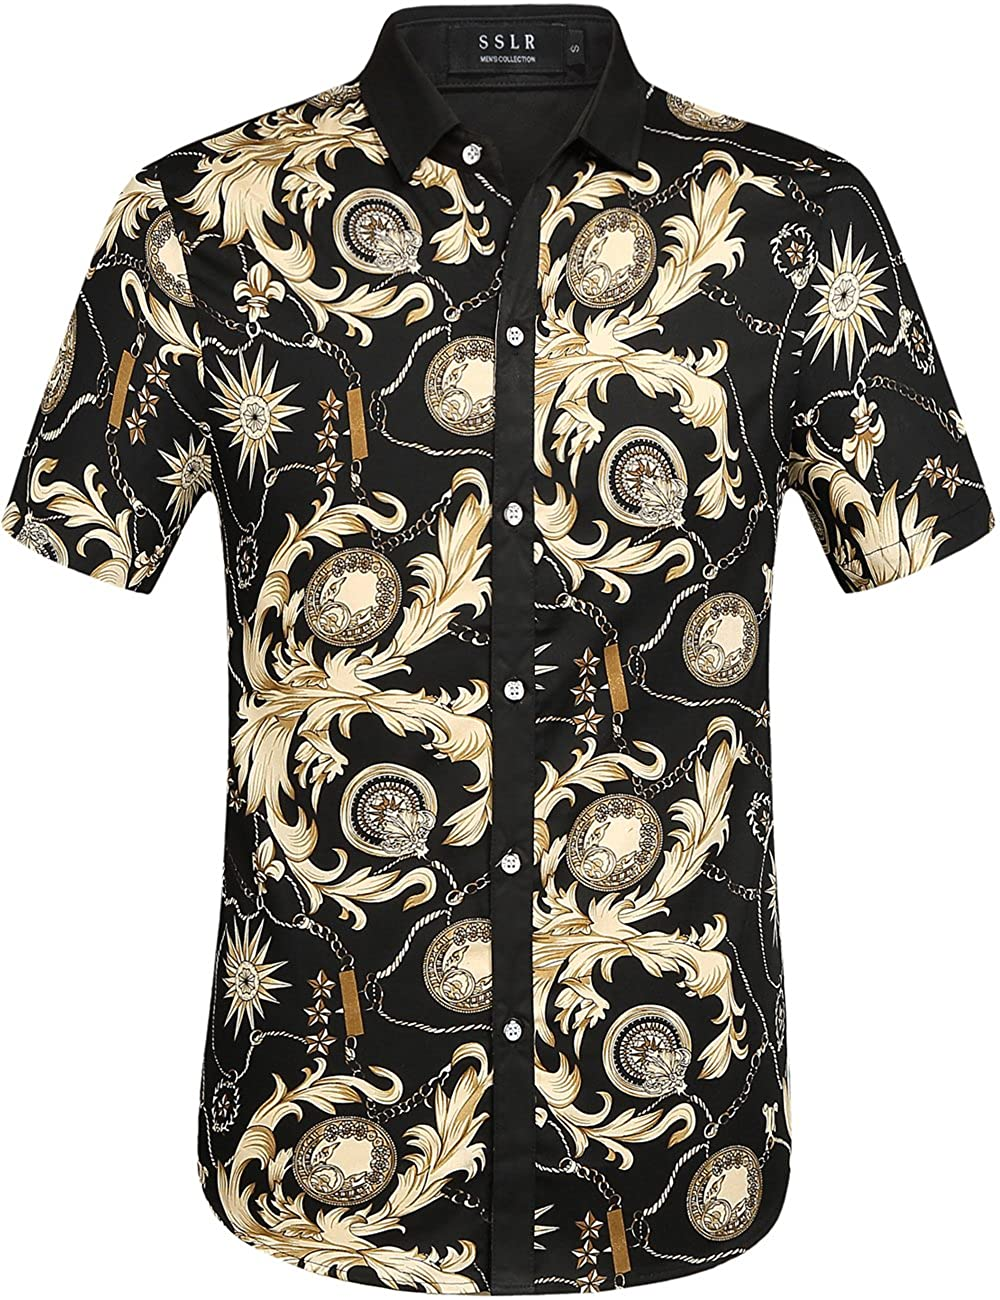 SSLR Mens Asterism Printed Short Sleeve Casual Button-Down Shirt